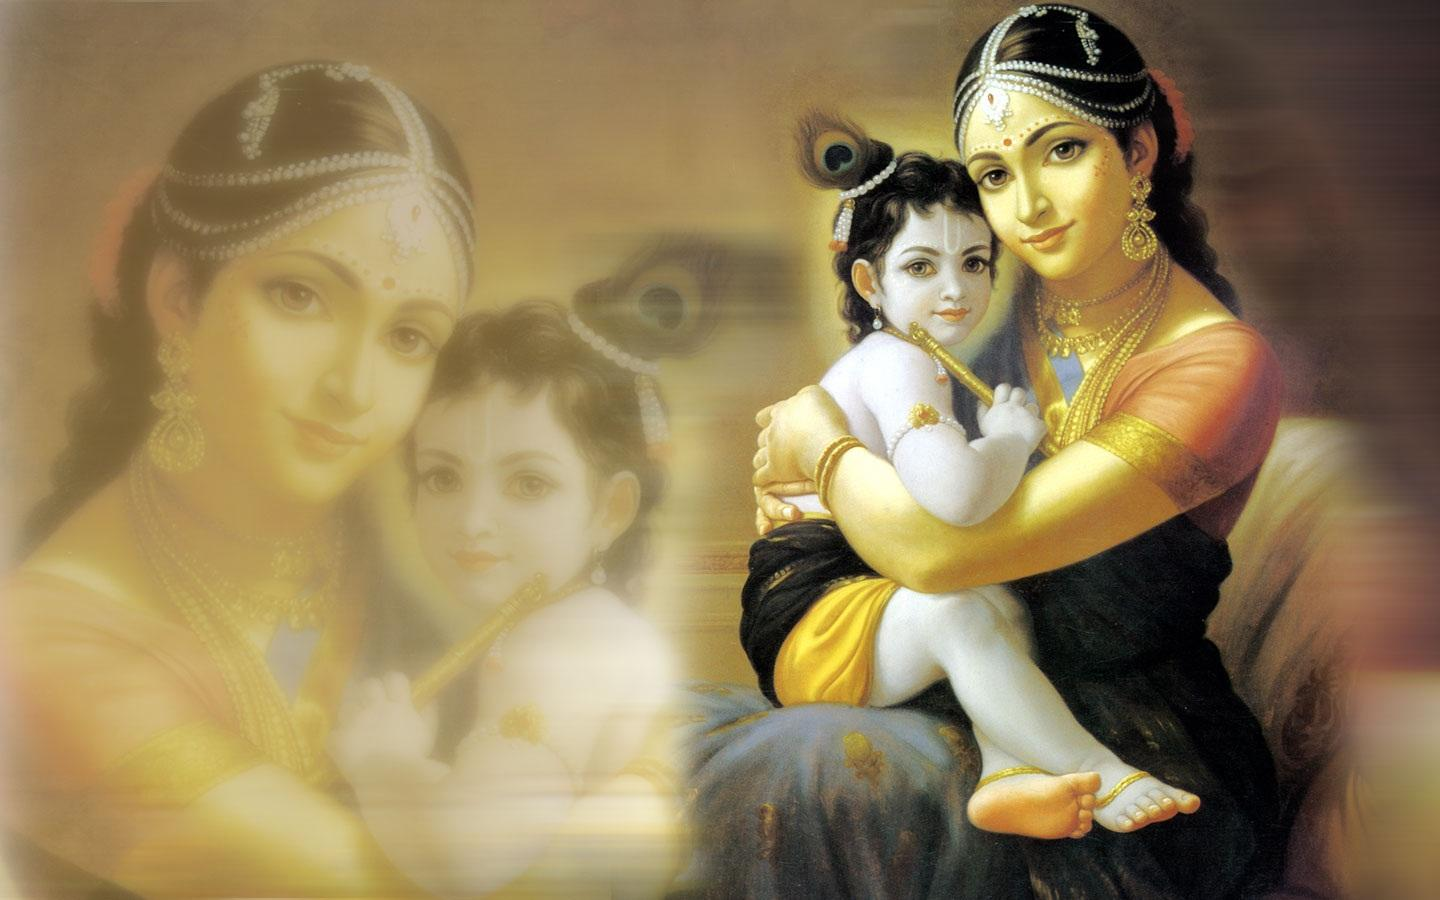 Download Krishna with yashoda - Janmashtami wallpapers for